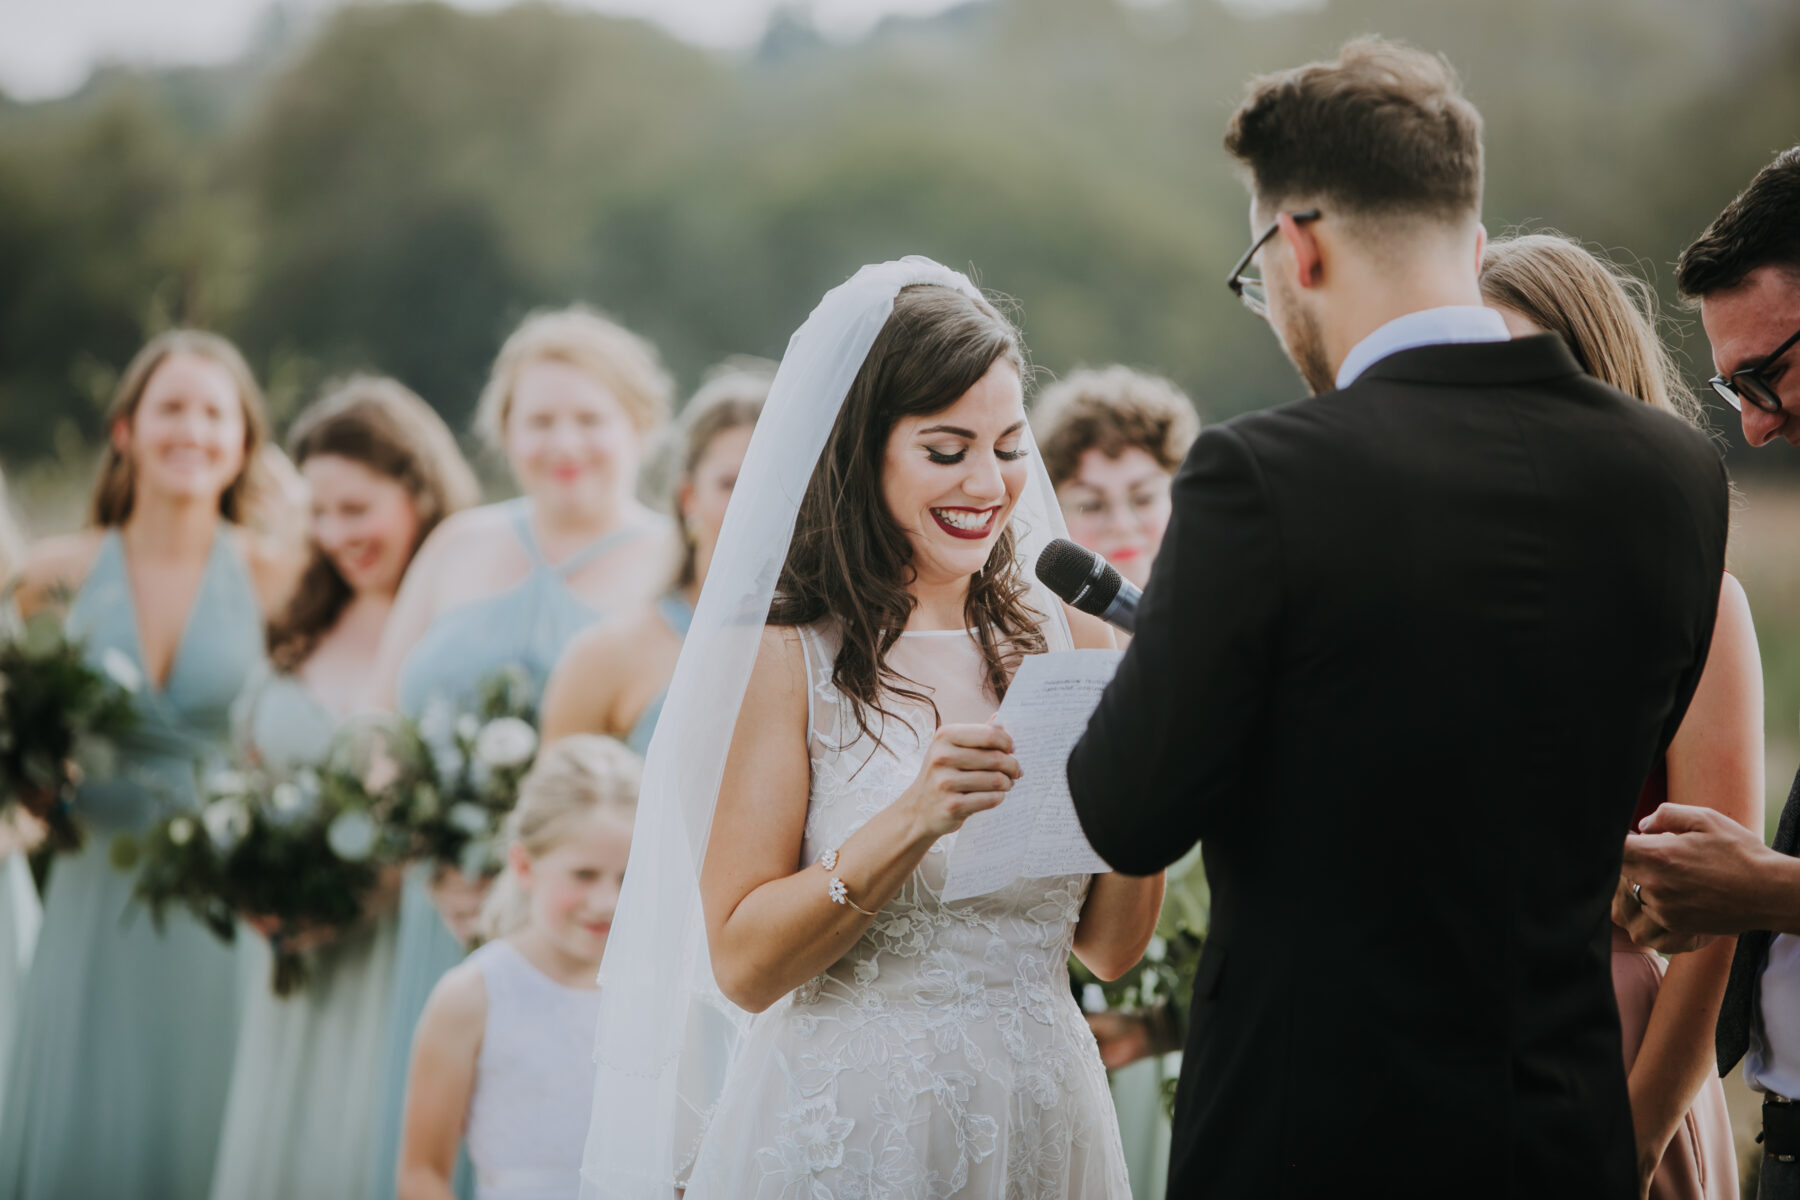 Wedding vows: Nashville Wedding with Beautiful Views by Teale Photography featured on Nashville Bride Guide